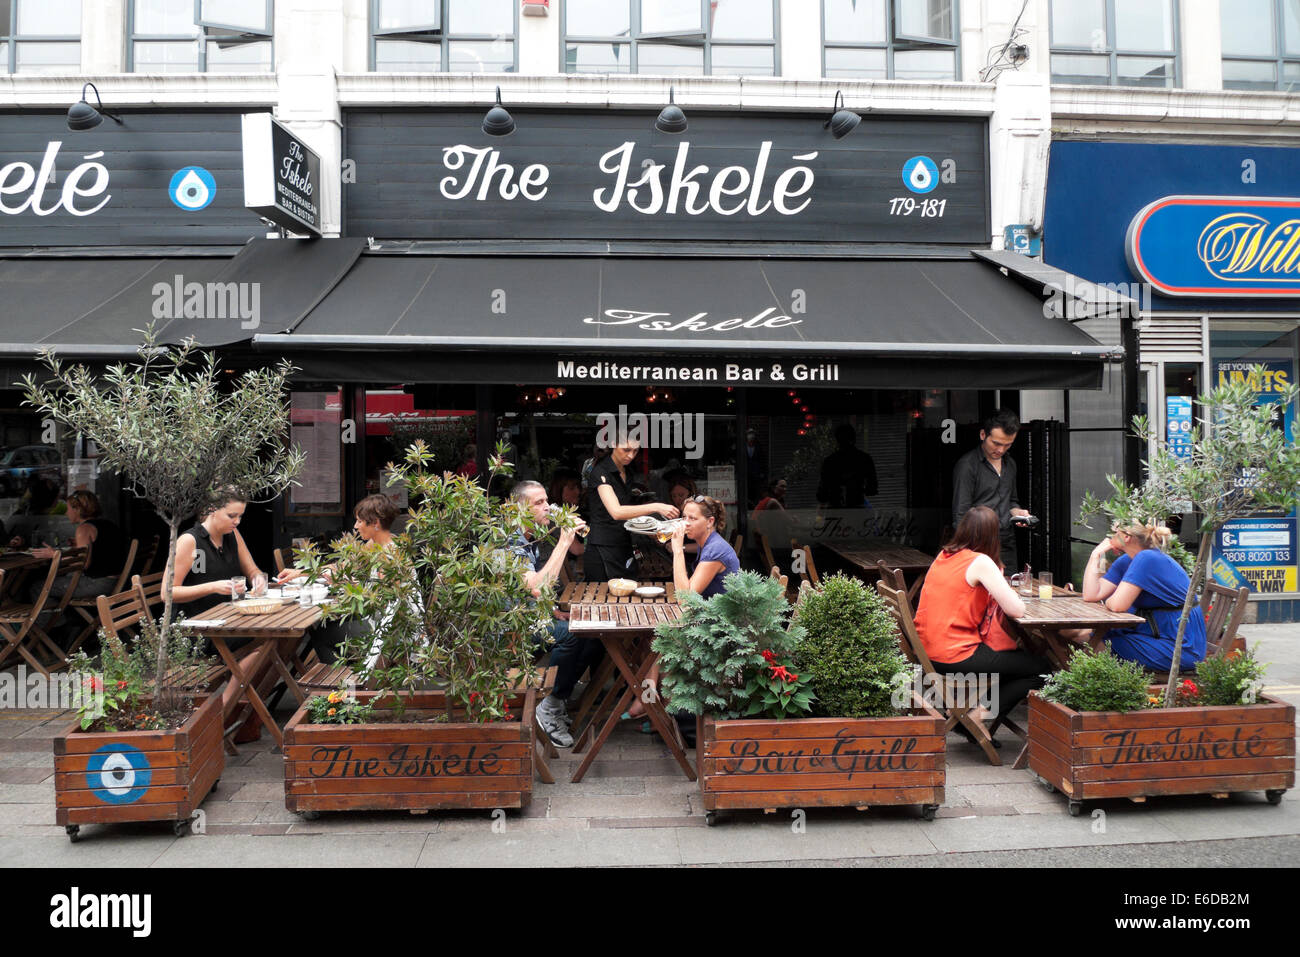 The Iskele Mediterranean Bar and Grill on Whitecross Street people eating at outdoor tables in summer London E1 - Stock Image